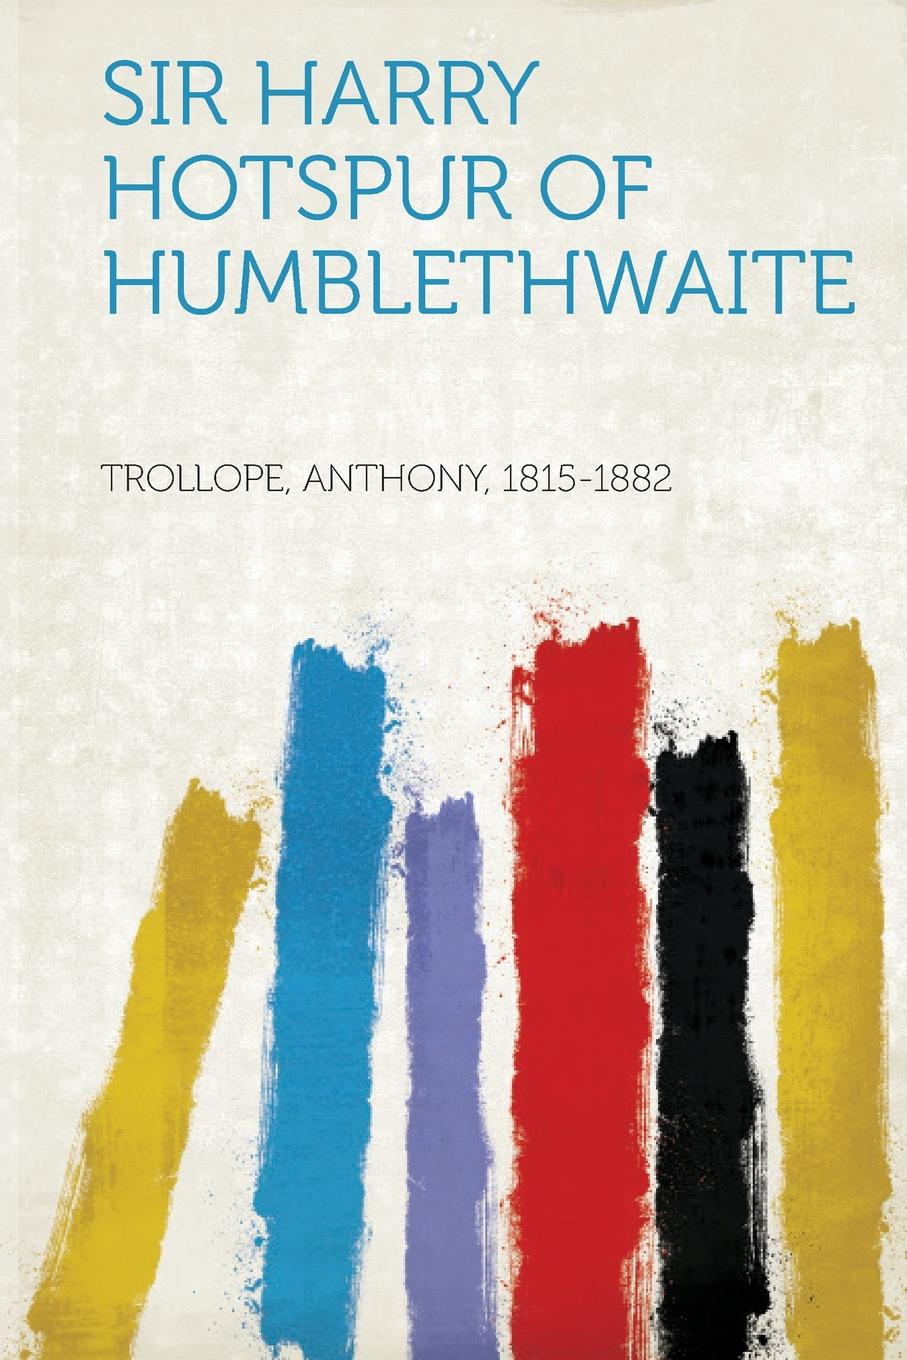 Trollope Anthony 1815-1882 Sir Harry Hotspur of Humblethwaite trollope anthony sir harry hotspur of humblethwaite